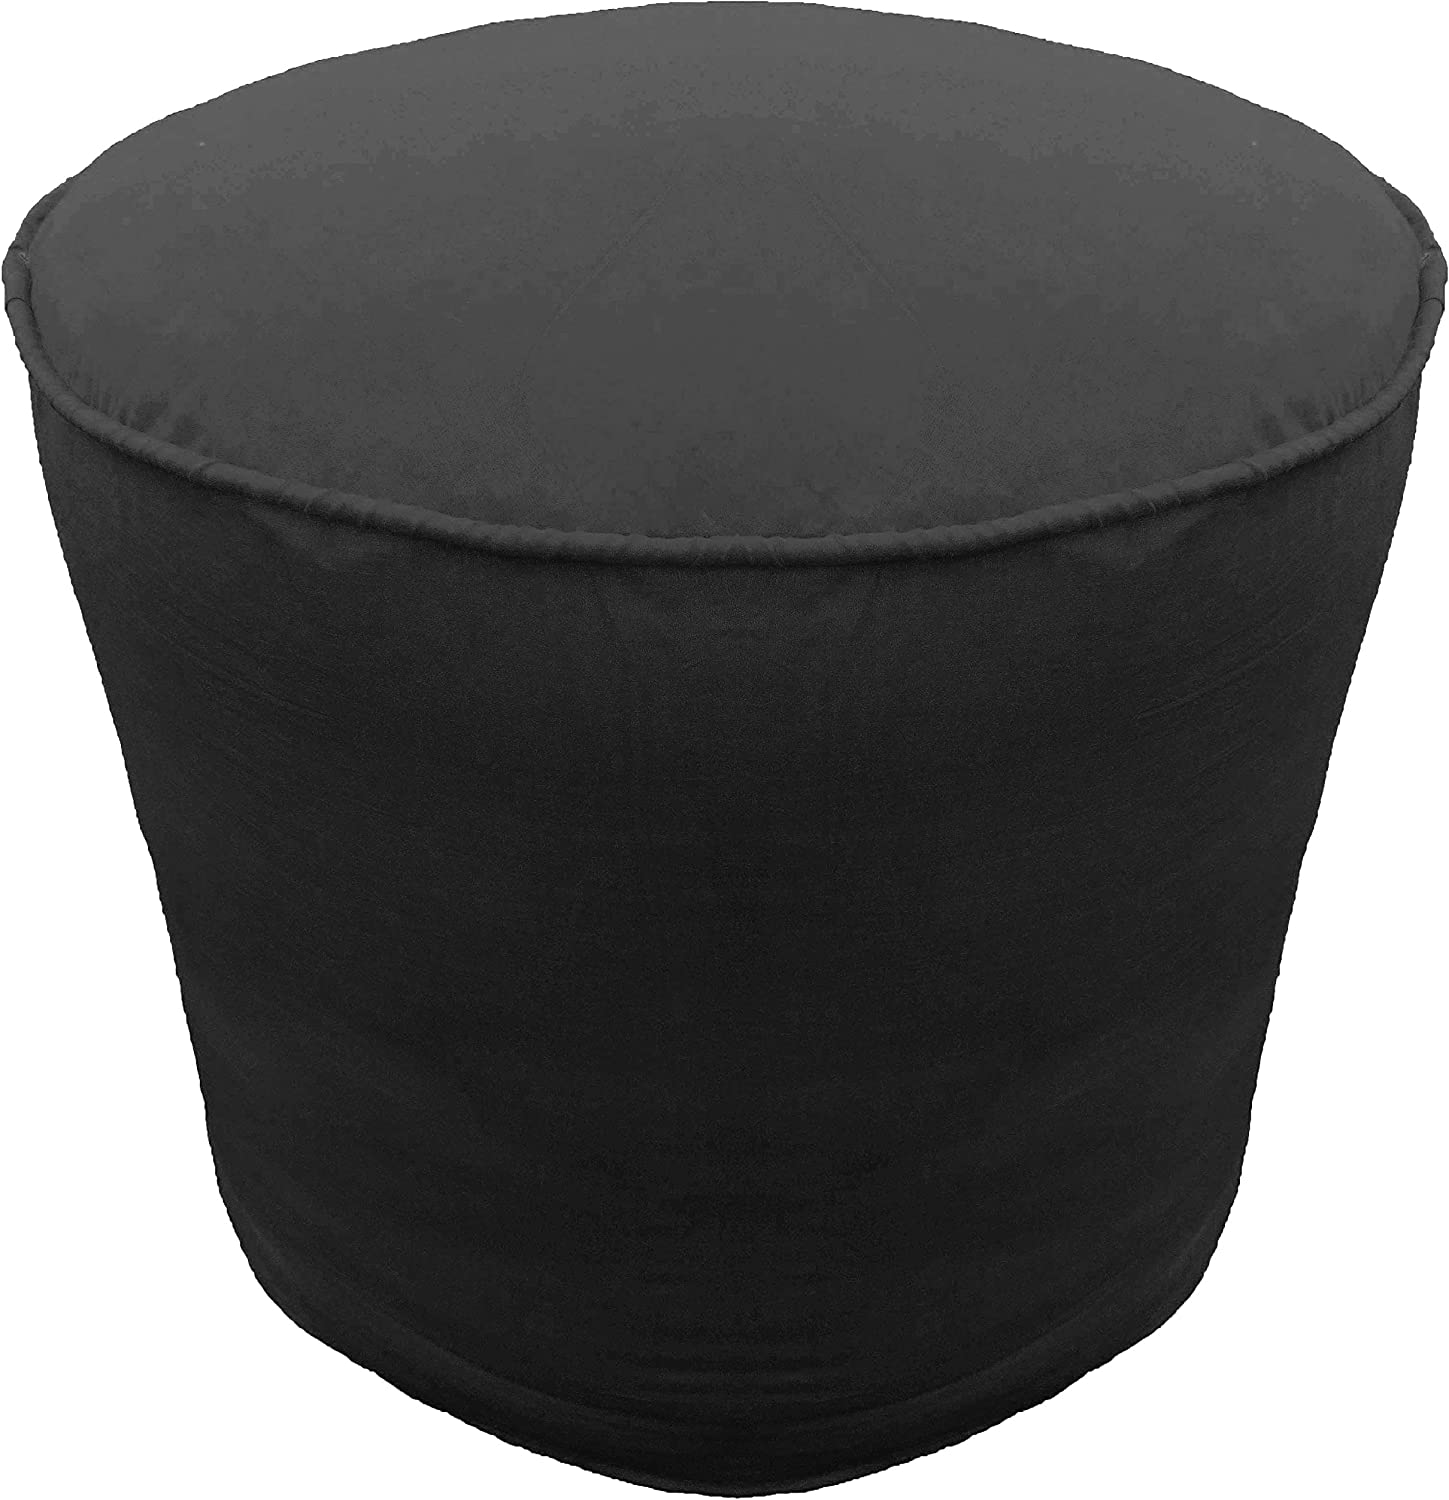 Ottoman Footstool Super popular specialty store Cover Cotton Round Max 87% OFF Blac Piping Pouf with